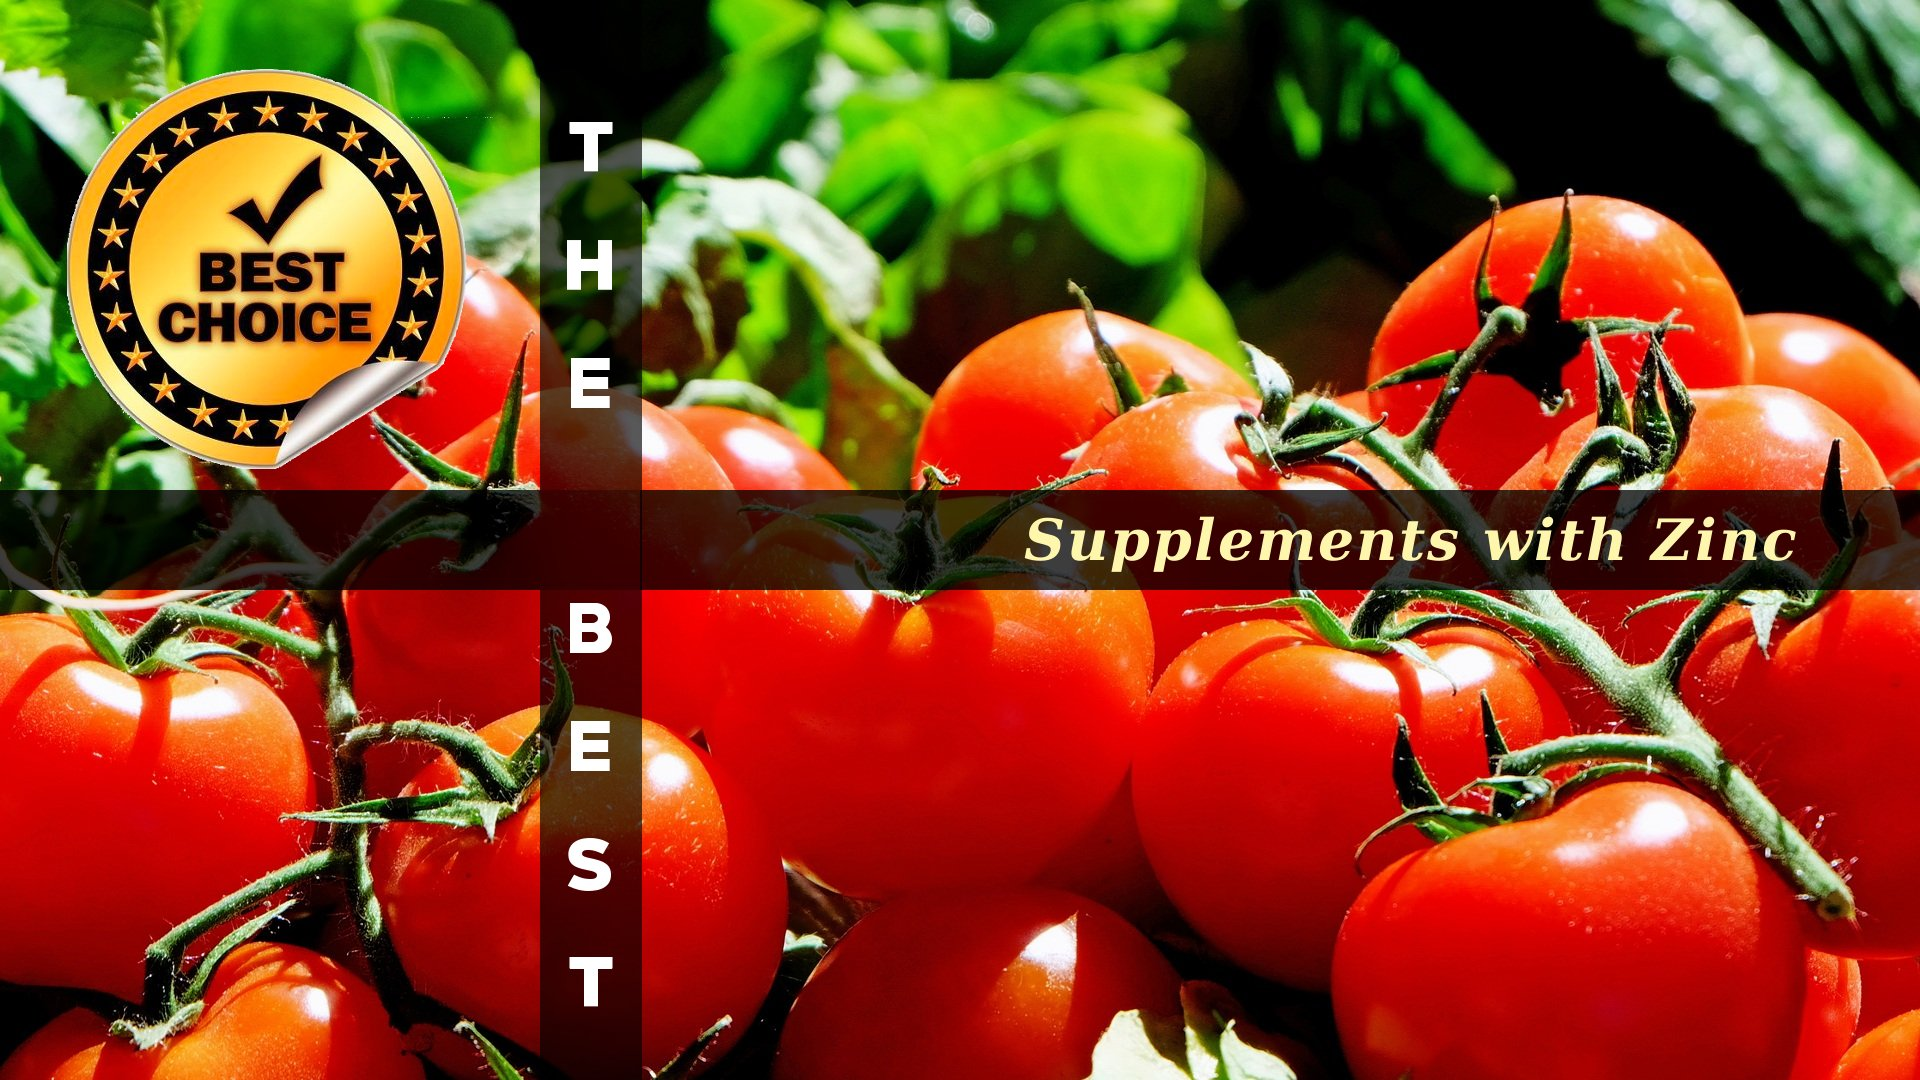 The Supplements with Zinc